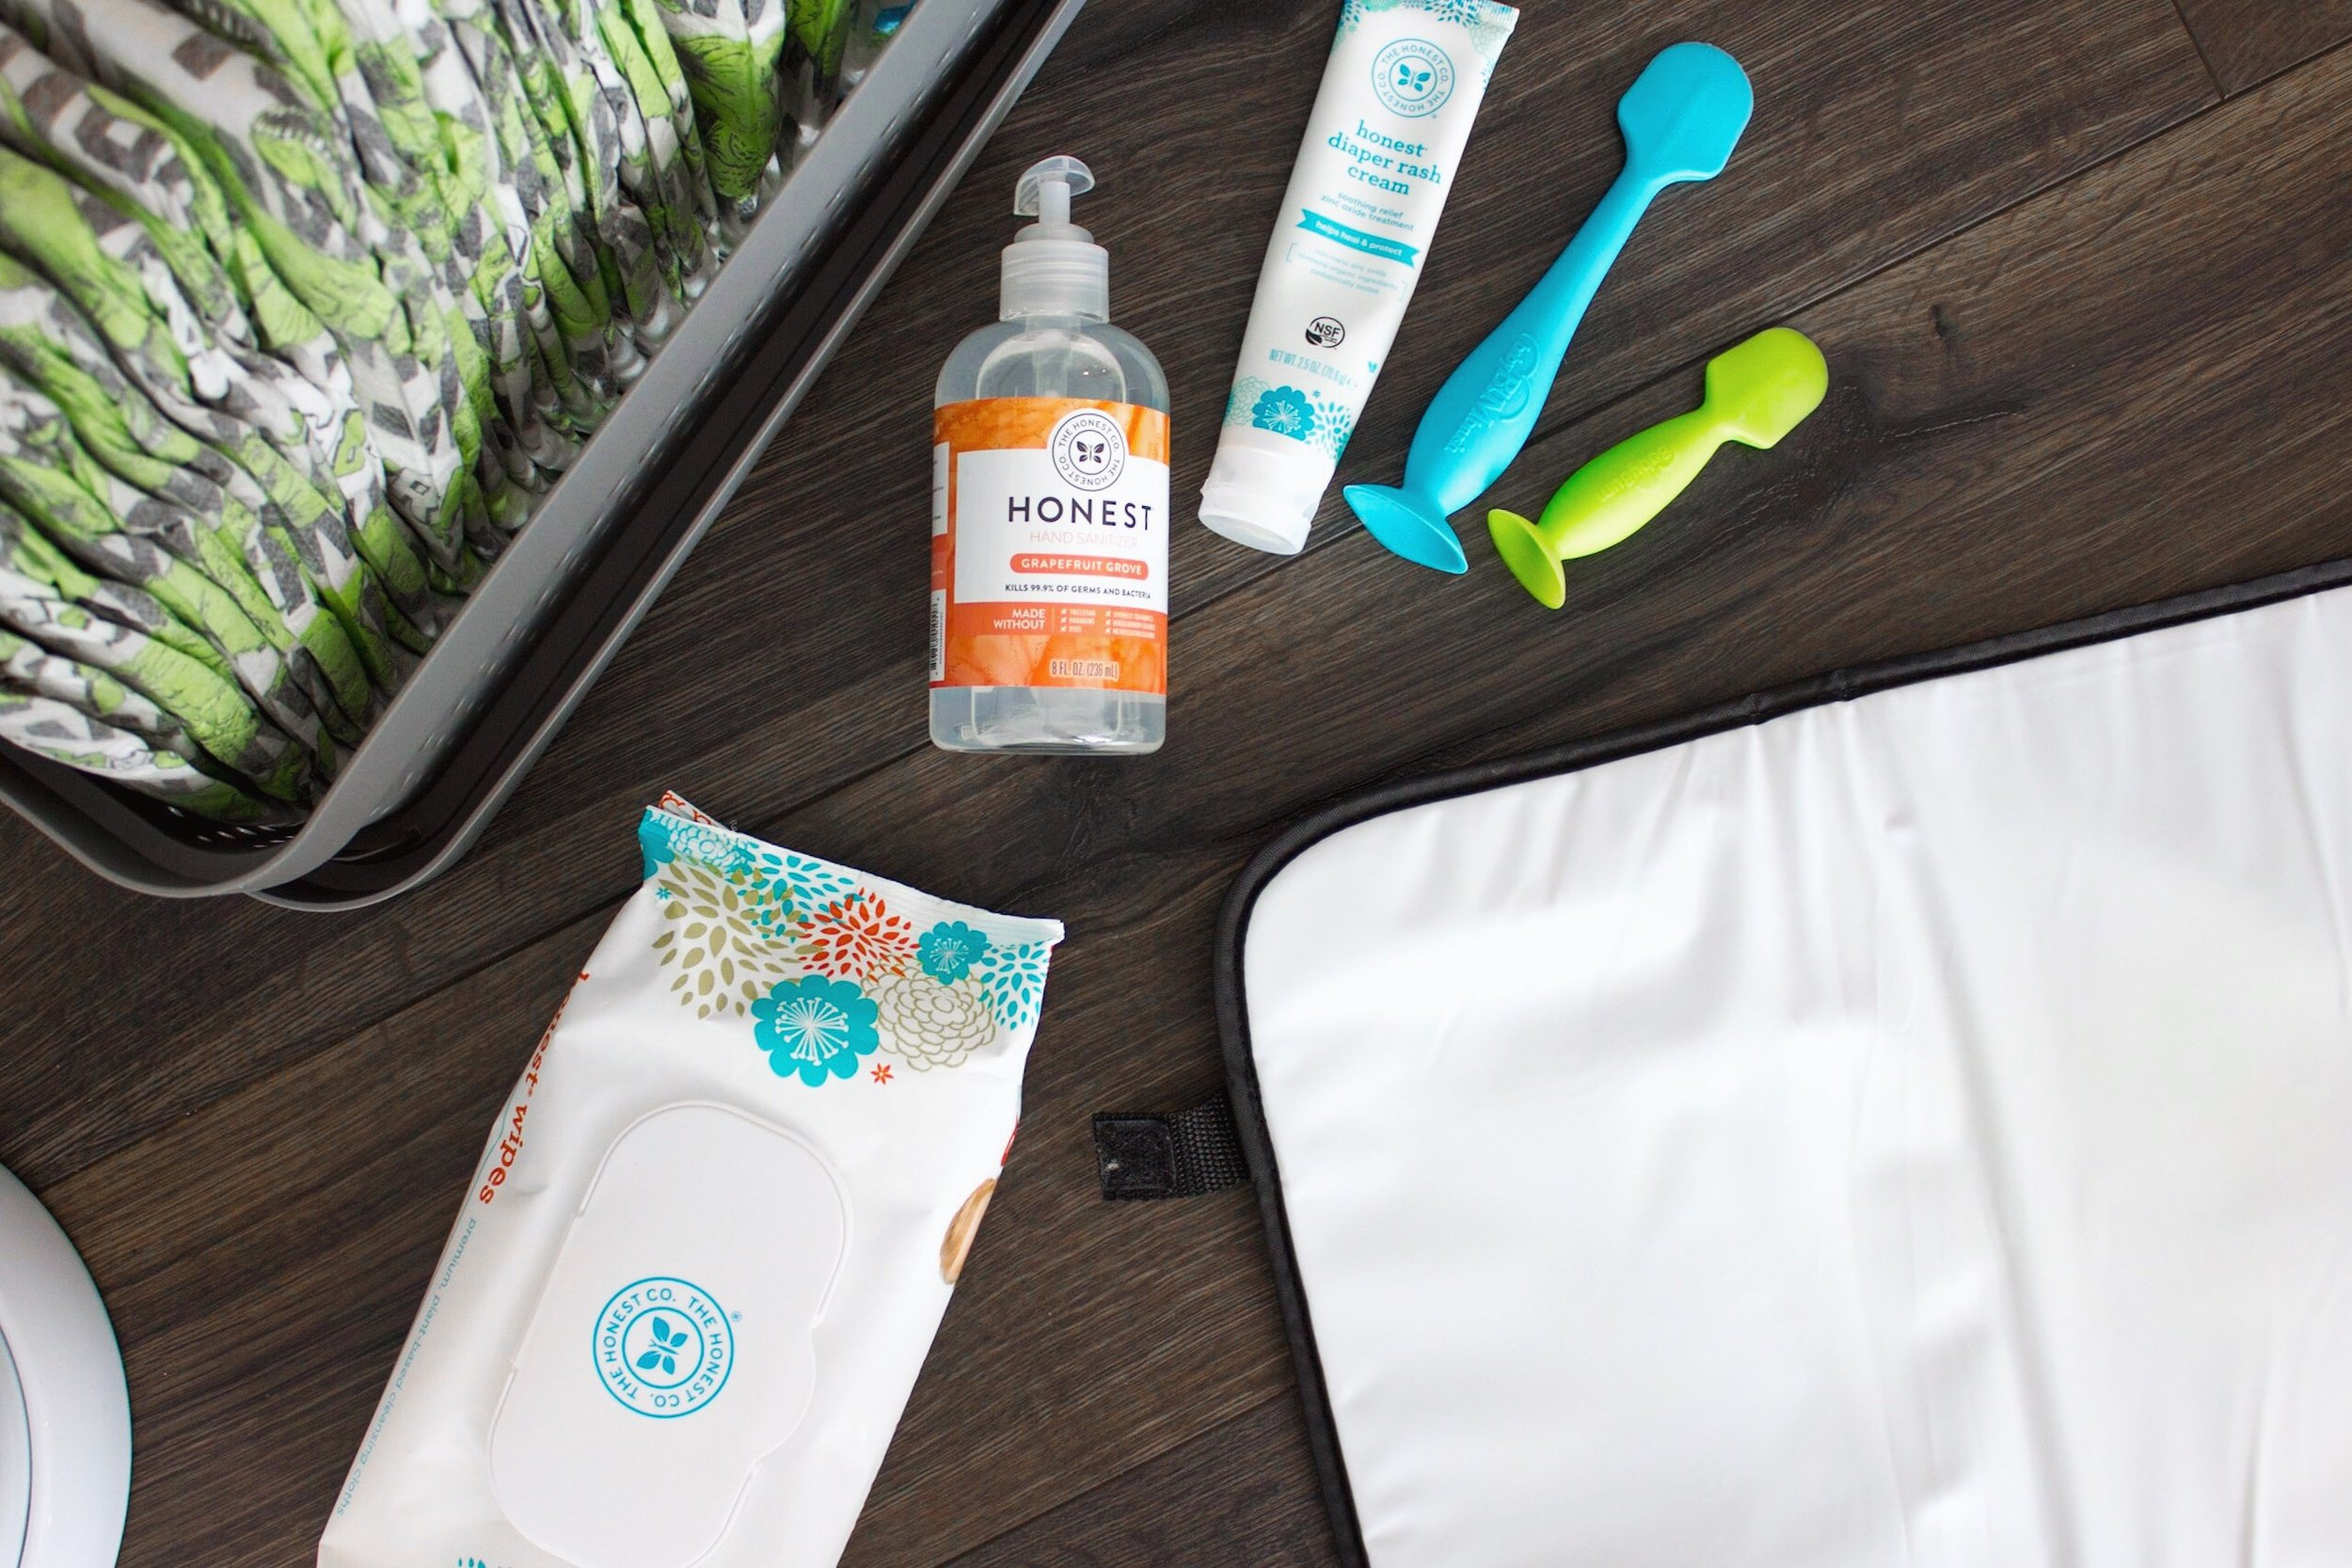 Portable Changing Pad // Honest Diapers // Honest Wipes